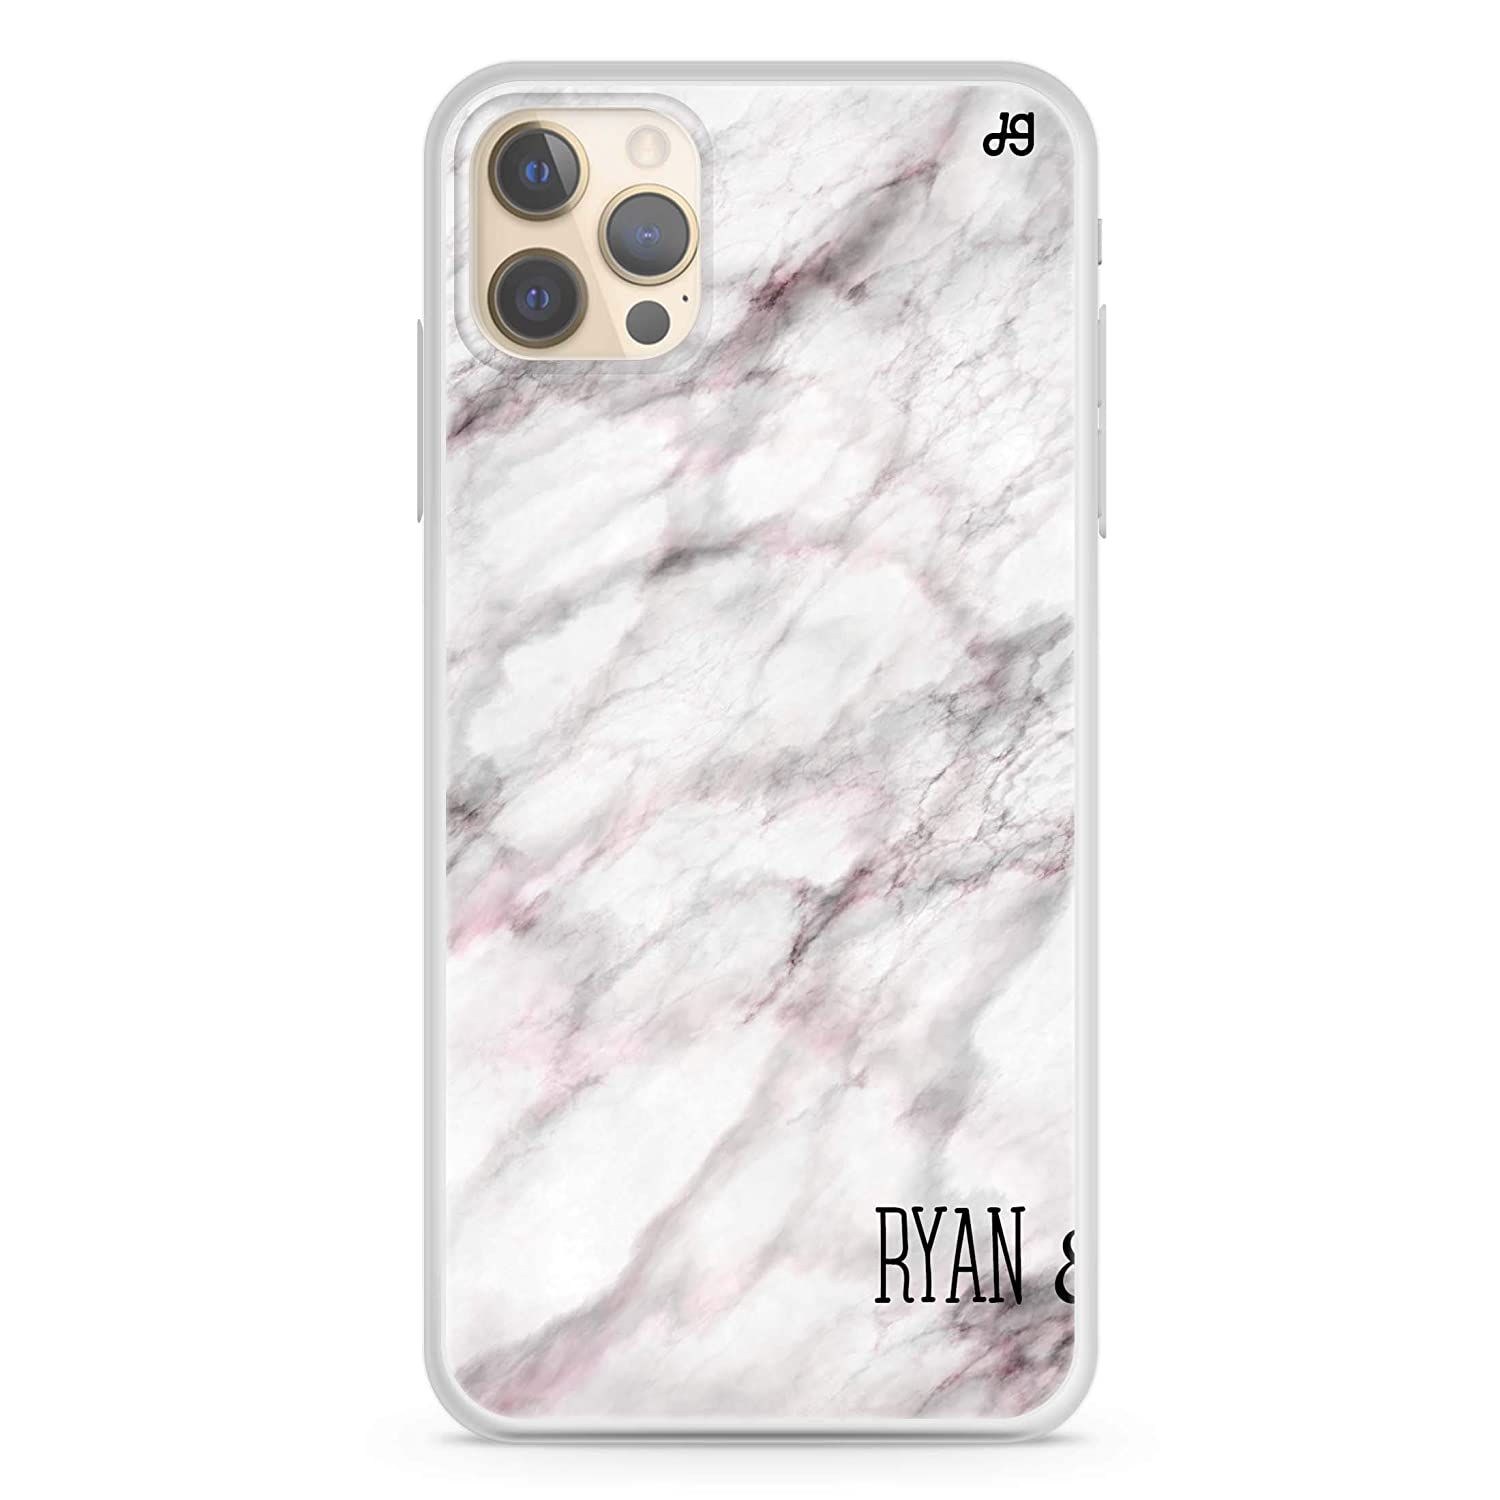 White Marble iPhone 12 Pro Daily bargain sale Soft Case Max Clear San Antonio Mall iPhon